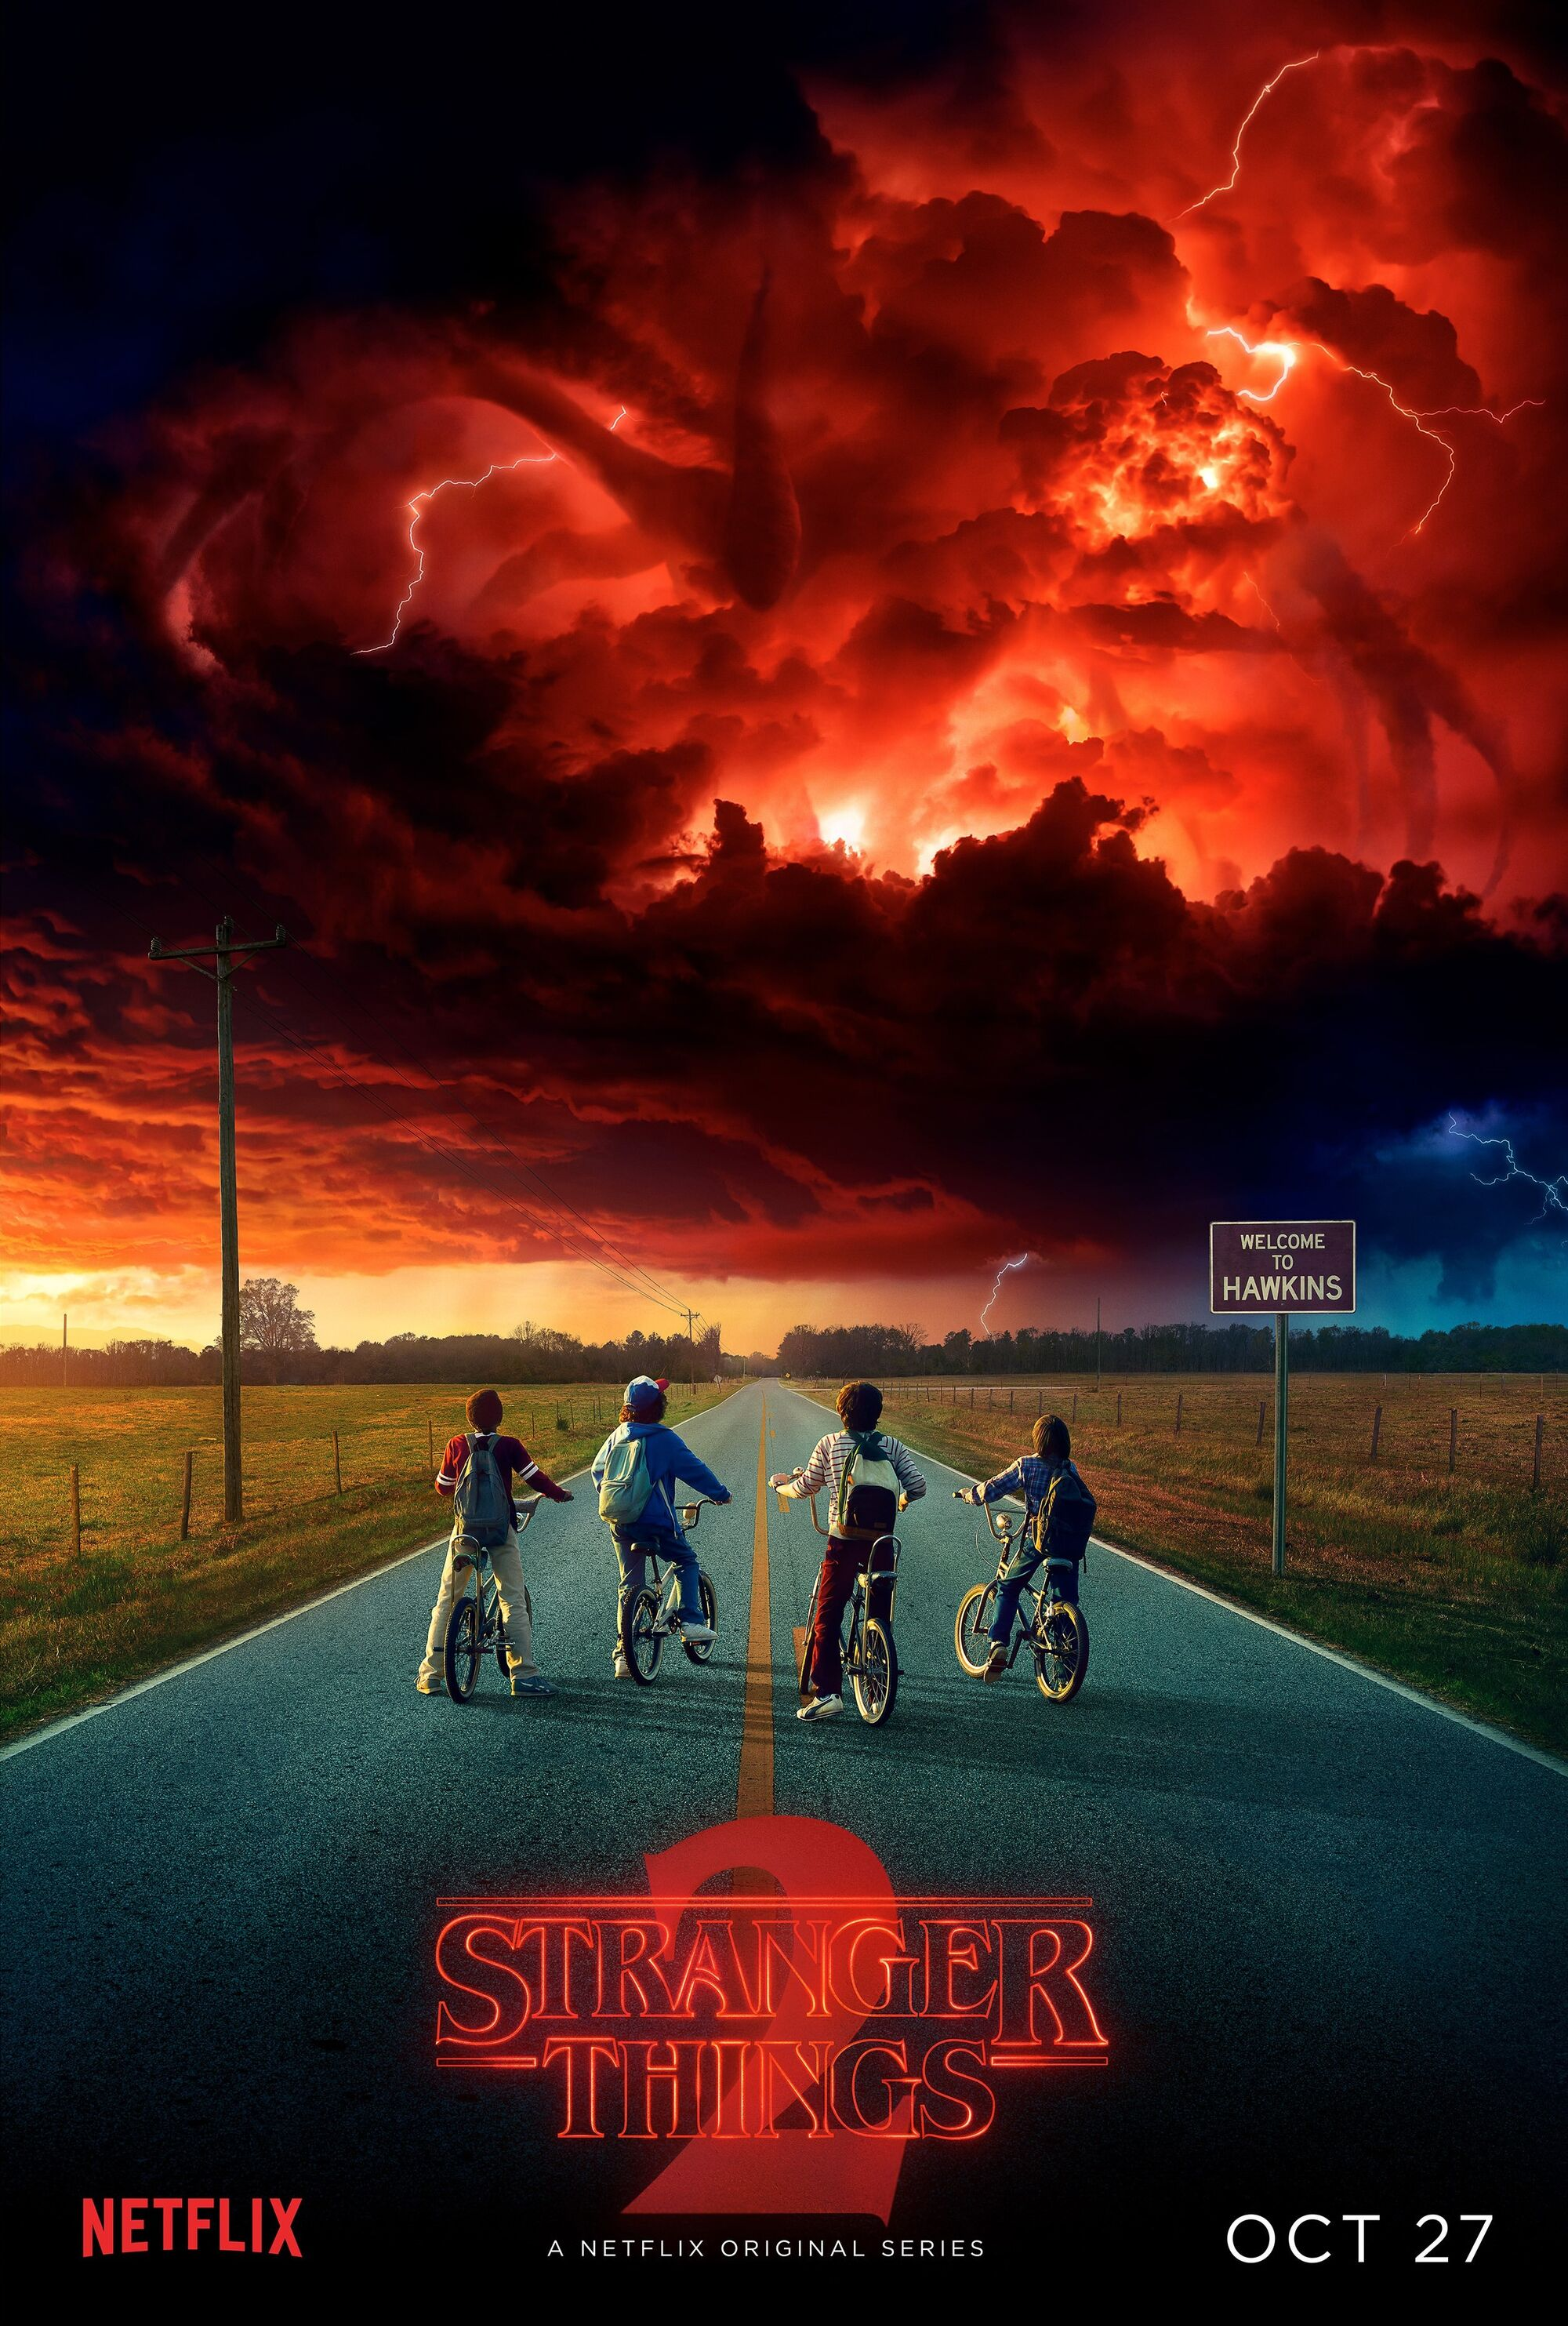 Minisode #8: We Saw It In Our Now Memories / Stranger Things 2 - It's time to enter the Upside Down with the Book Squad as we discuss Stranger Things 2. Play some synth music and take the Which Stranger Things Kid Are You? quiz along with us. Then we're talking character arcs, strong female characters, middle school